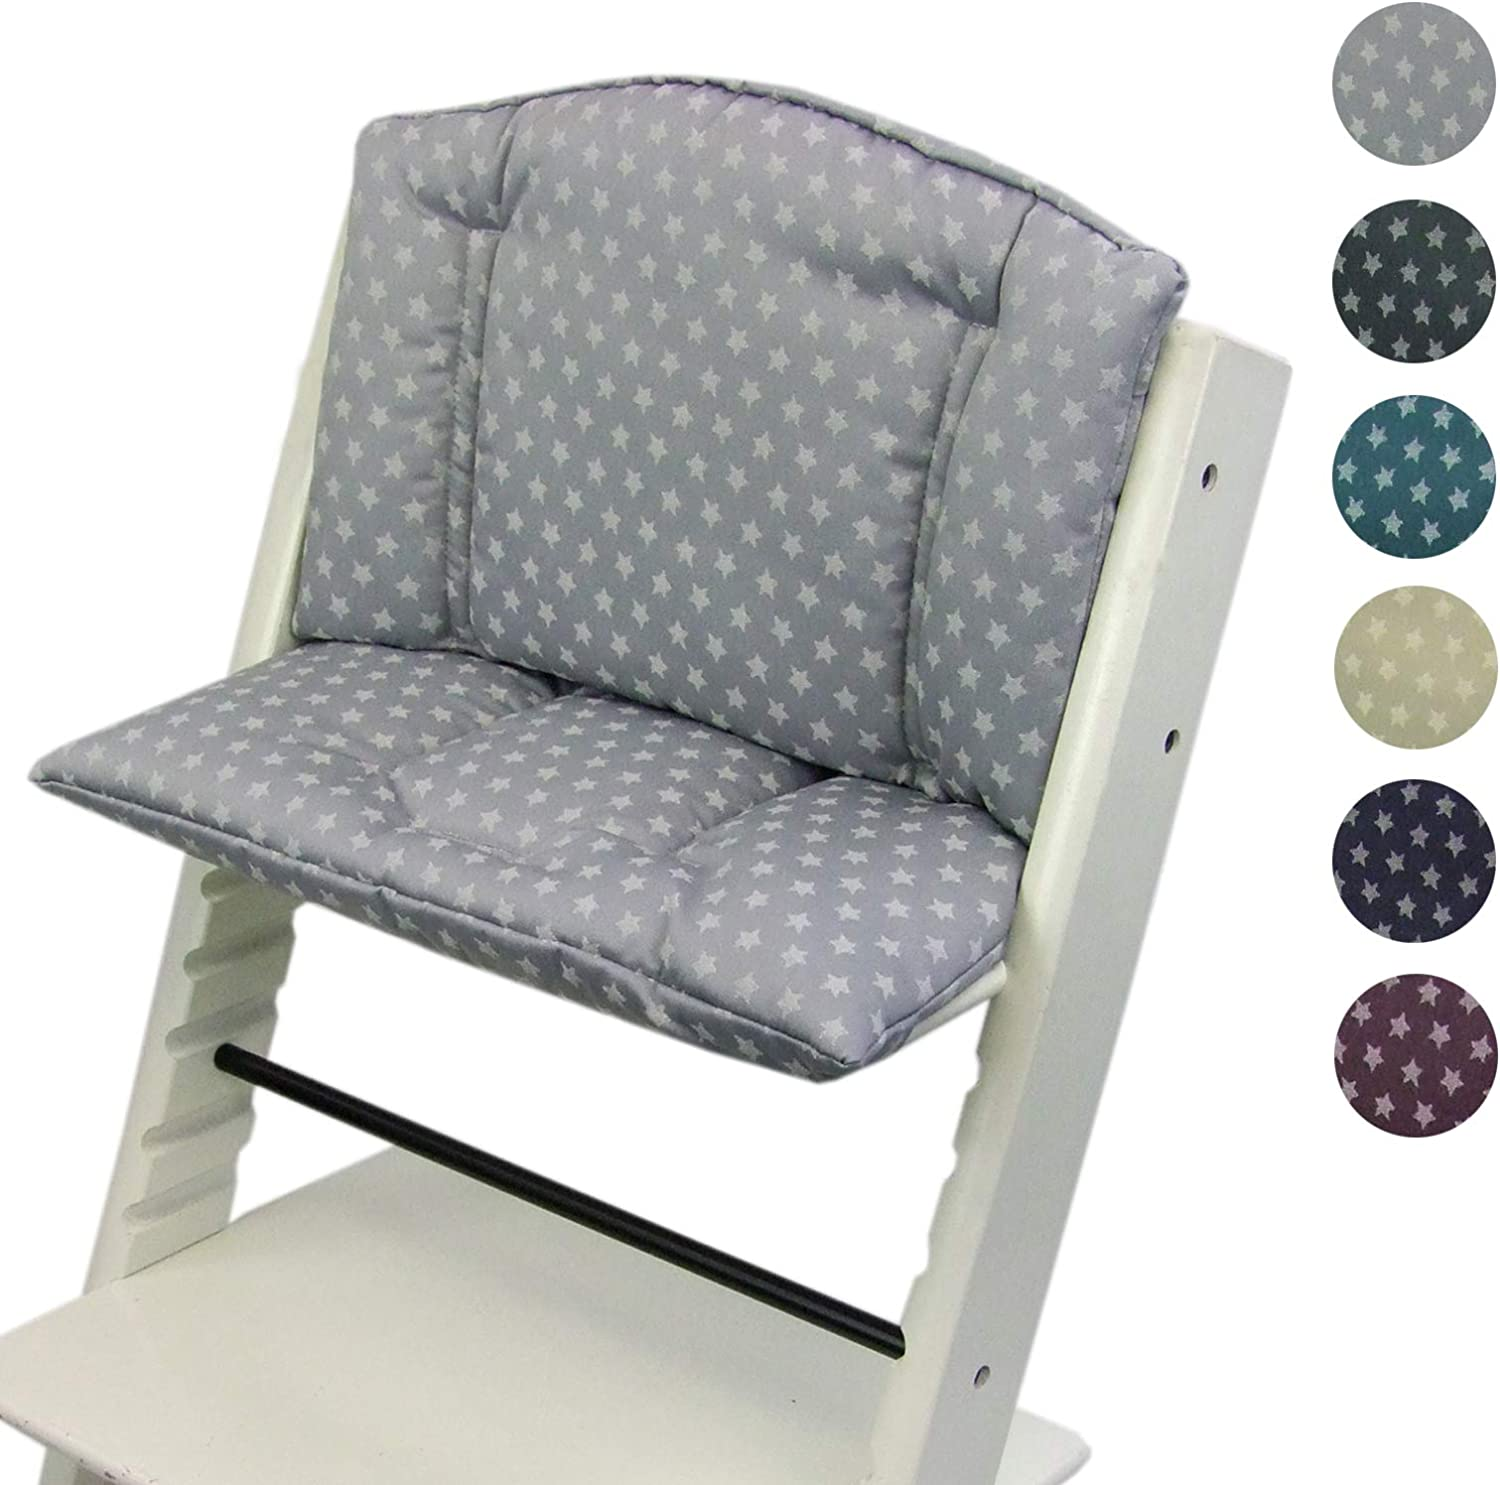 BambiniWelt Seat Cushion Set for Stokke Tripp Trapp High Chair 2 Piece Seat Cushion Cover Replacement Cushion Stars